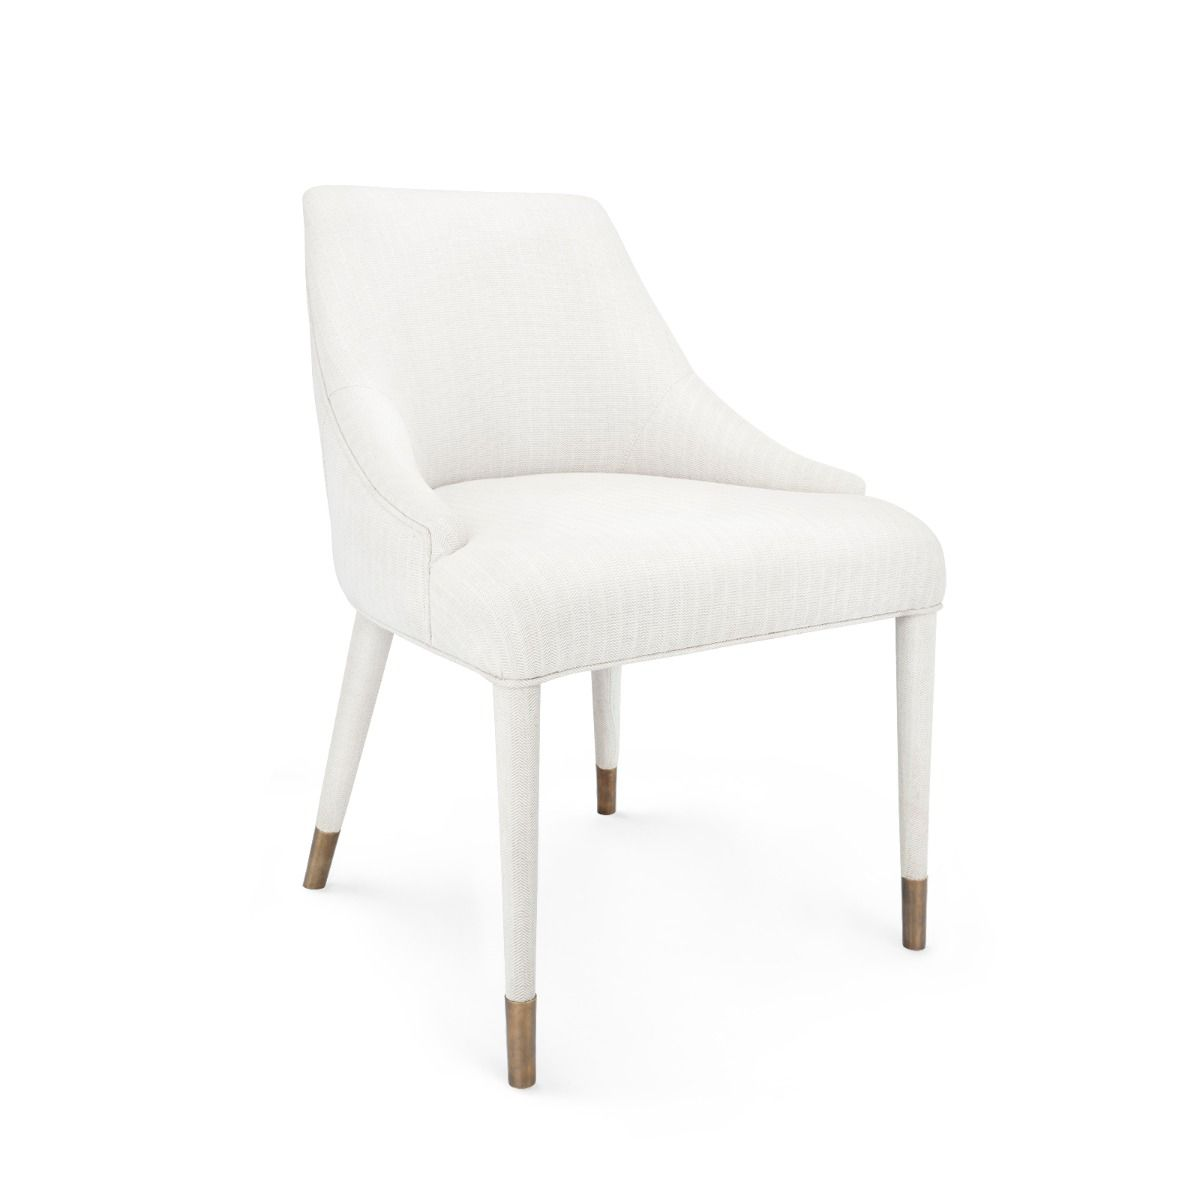 Bungalow 5 - ODETTE ARMCHAIR, NATURAL